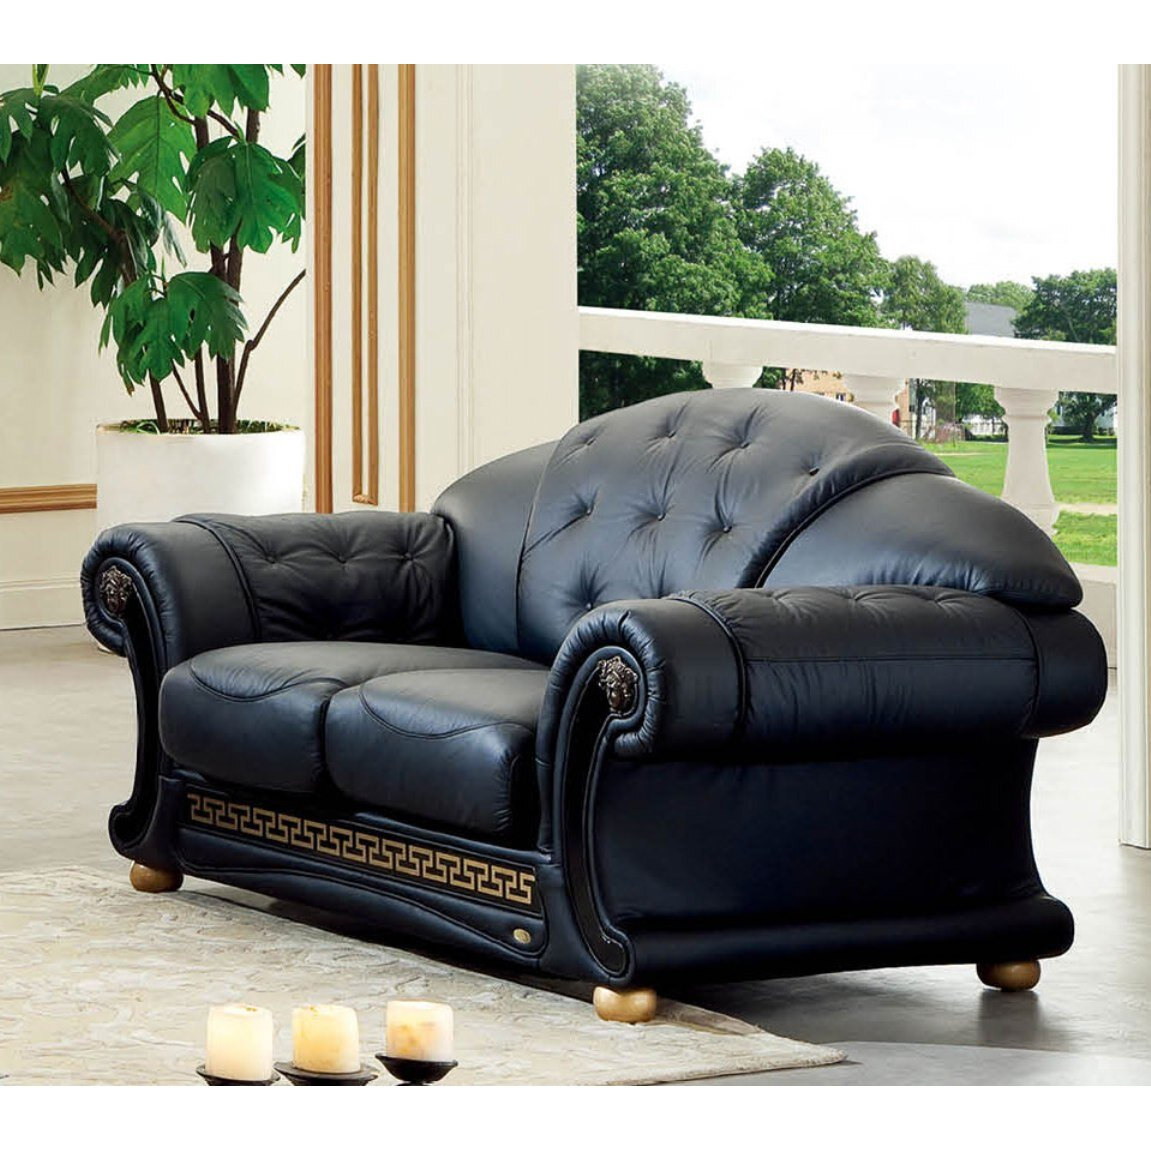 Nocidesign Noci Leather Loveseat Reviews Wayfair